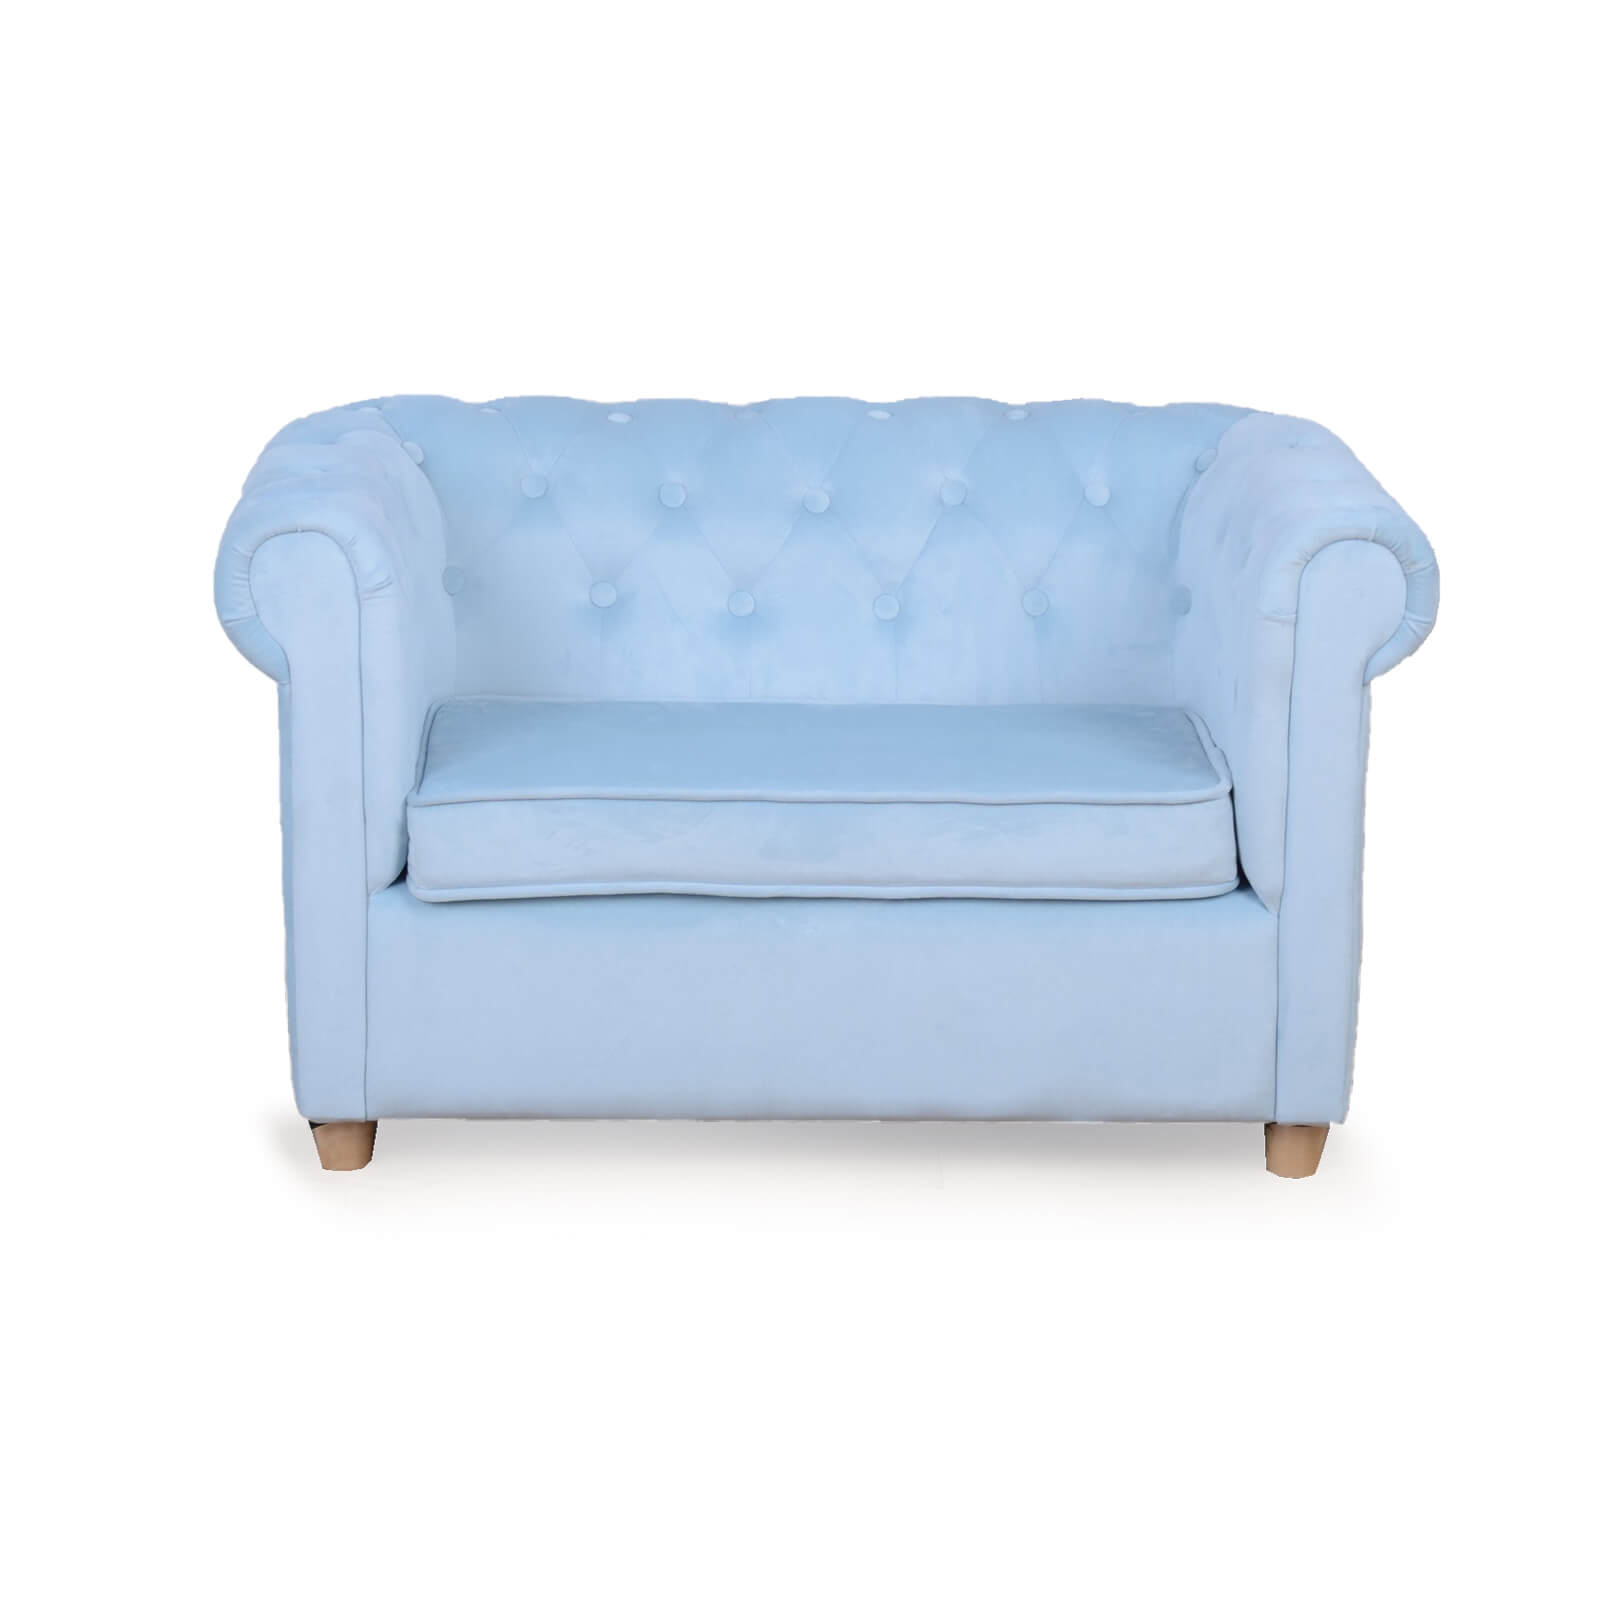 Star Kidz Chesterfield Sofa - light Blue Velvet